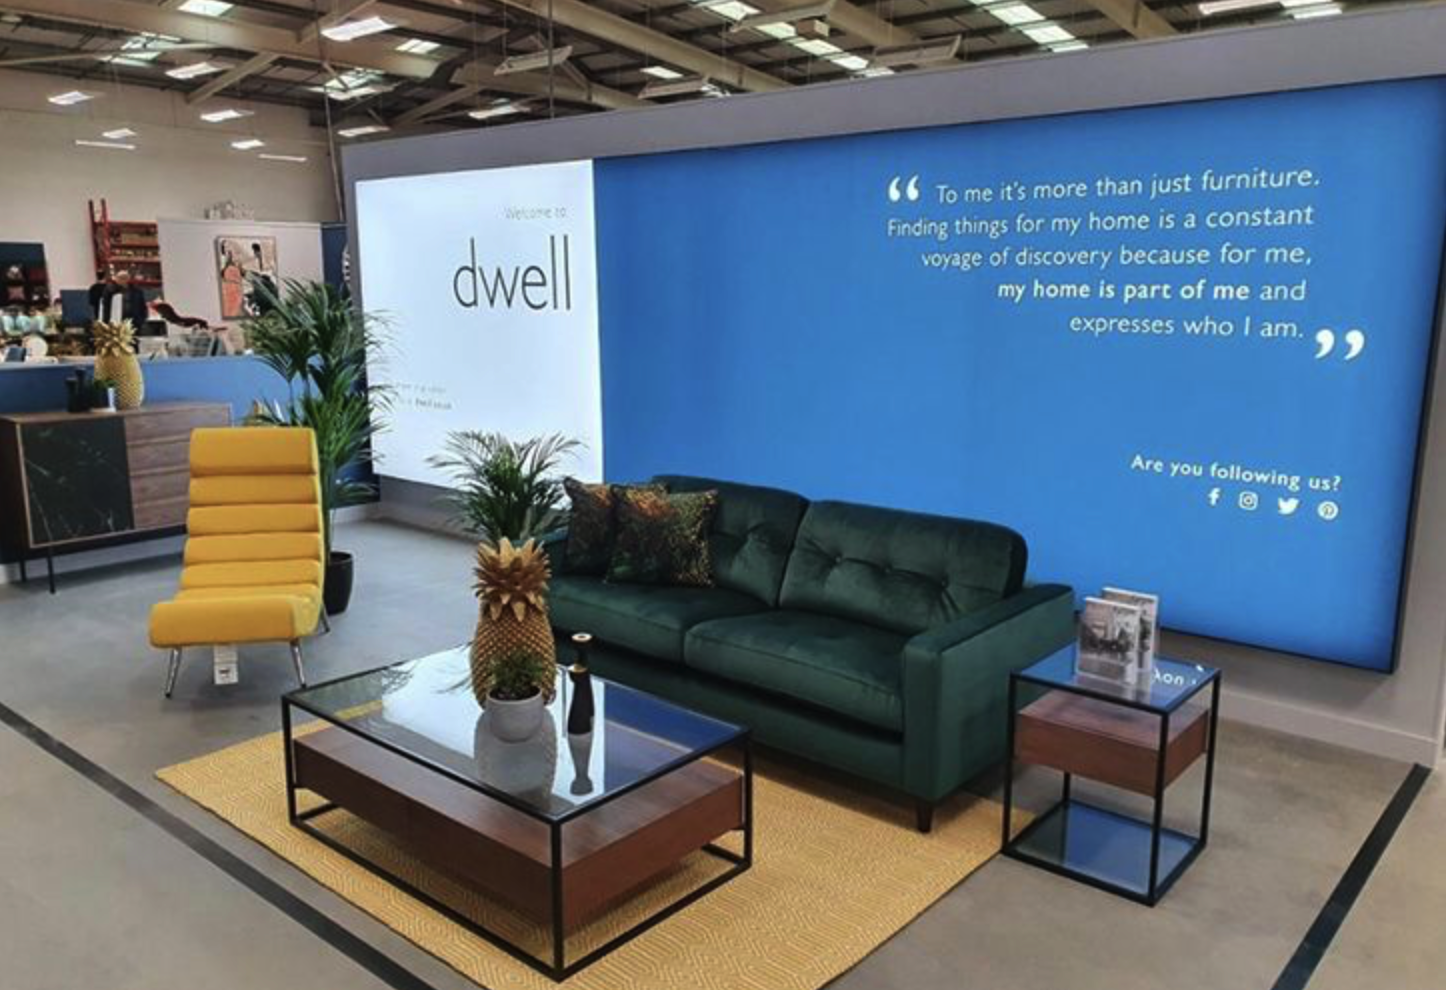 Homebase announces partnership with Dwell